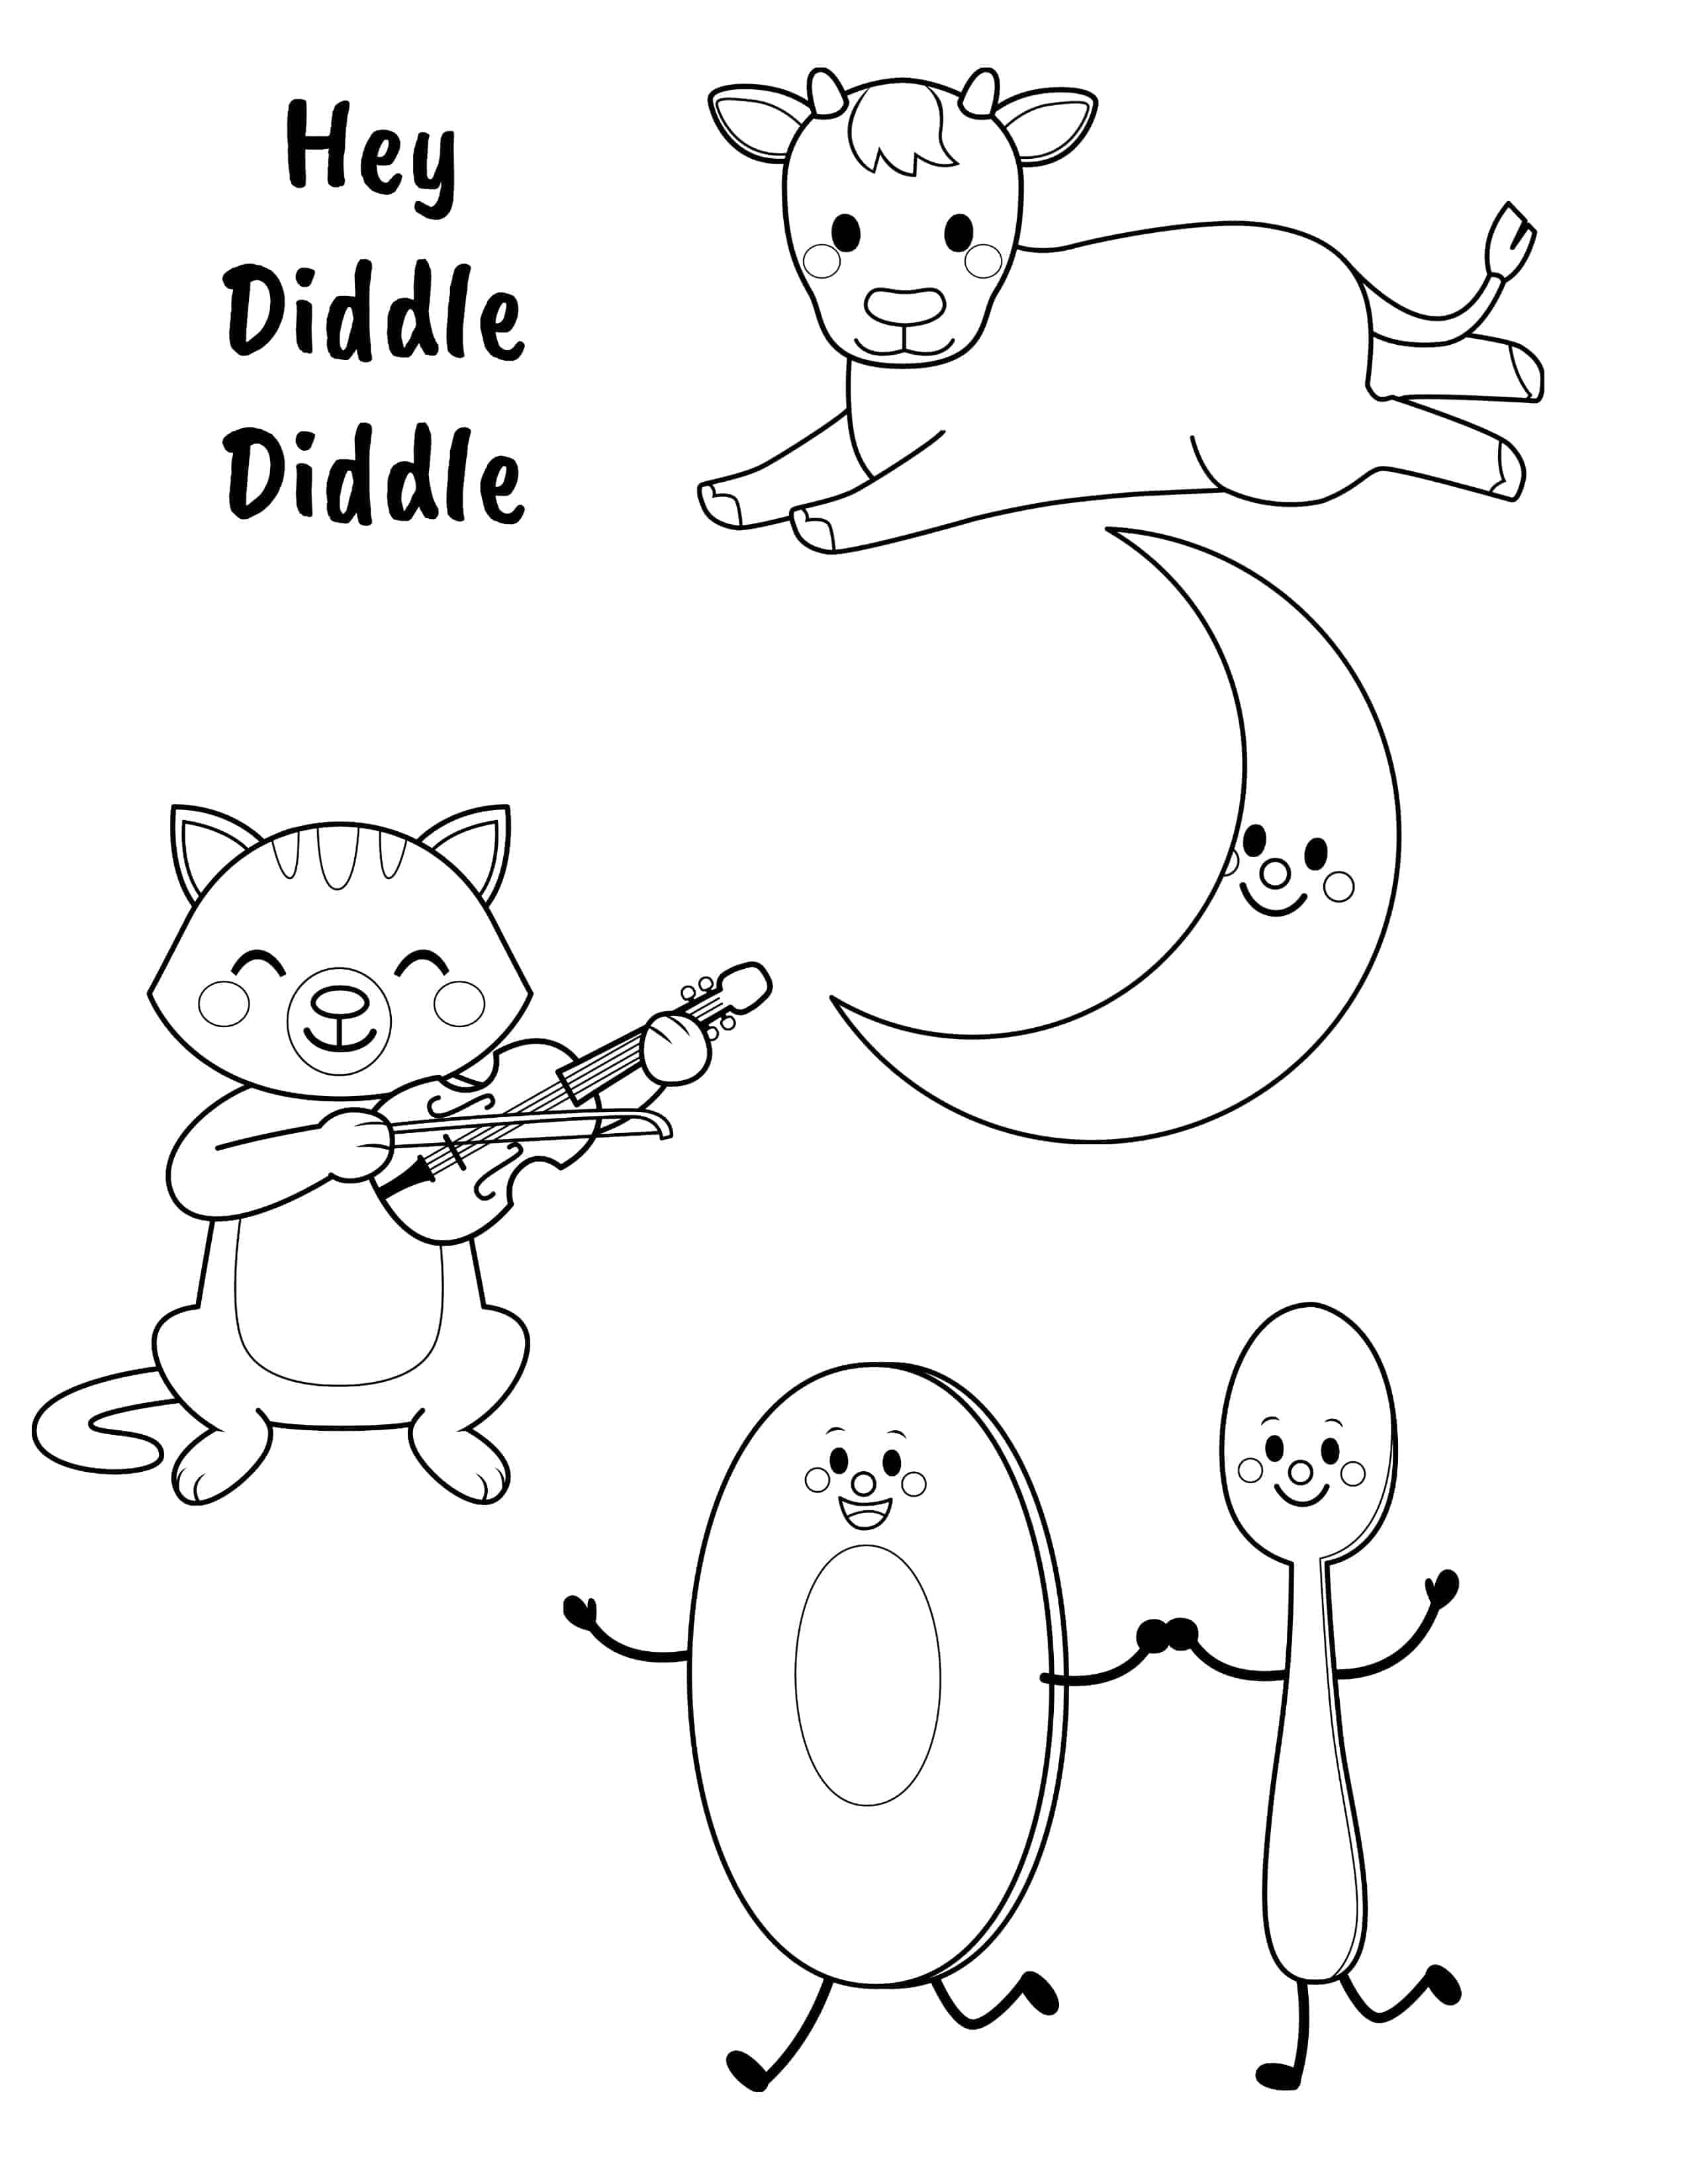 hey diddle diddle coloring sheet hey diddle diddle coloring page coloring pages for kids diddle diddle coloring sheet hey